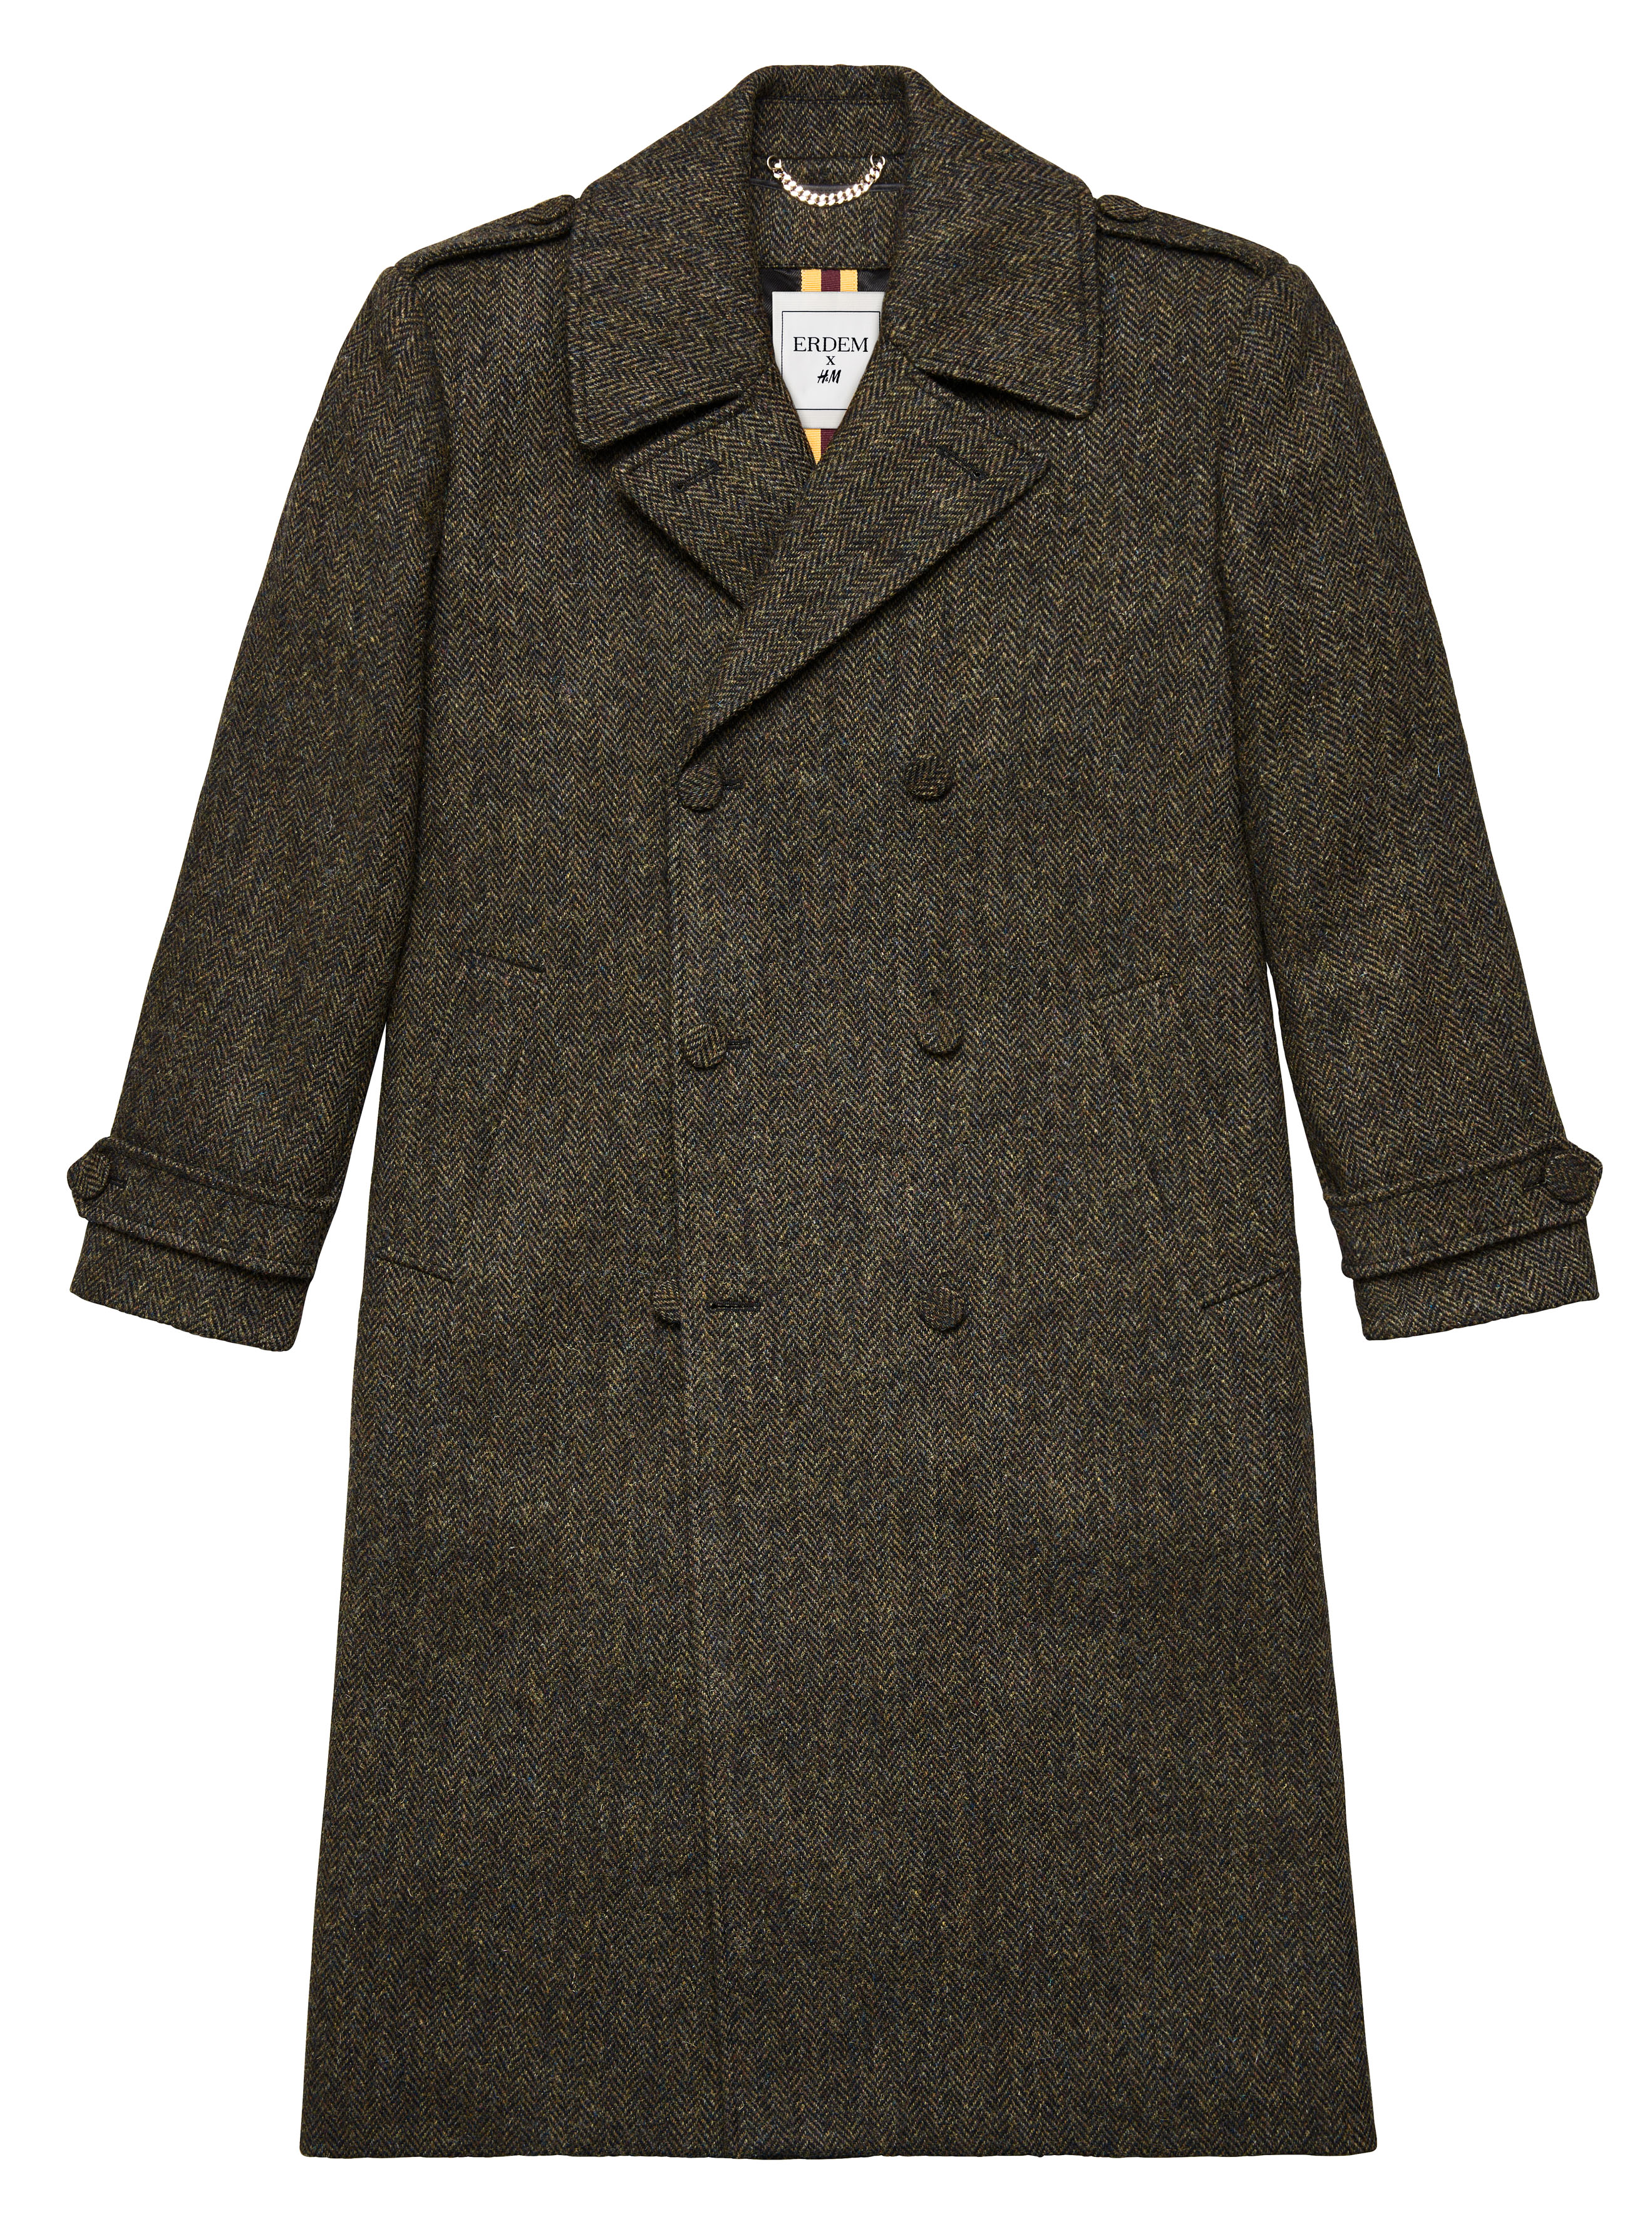 H&M _Erdem_Men_Quentin_Harris_Tweed_Coat_299,99EUR